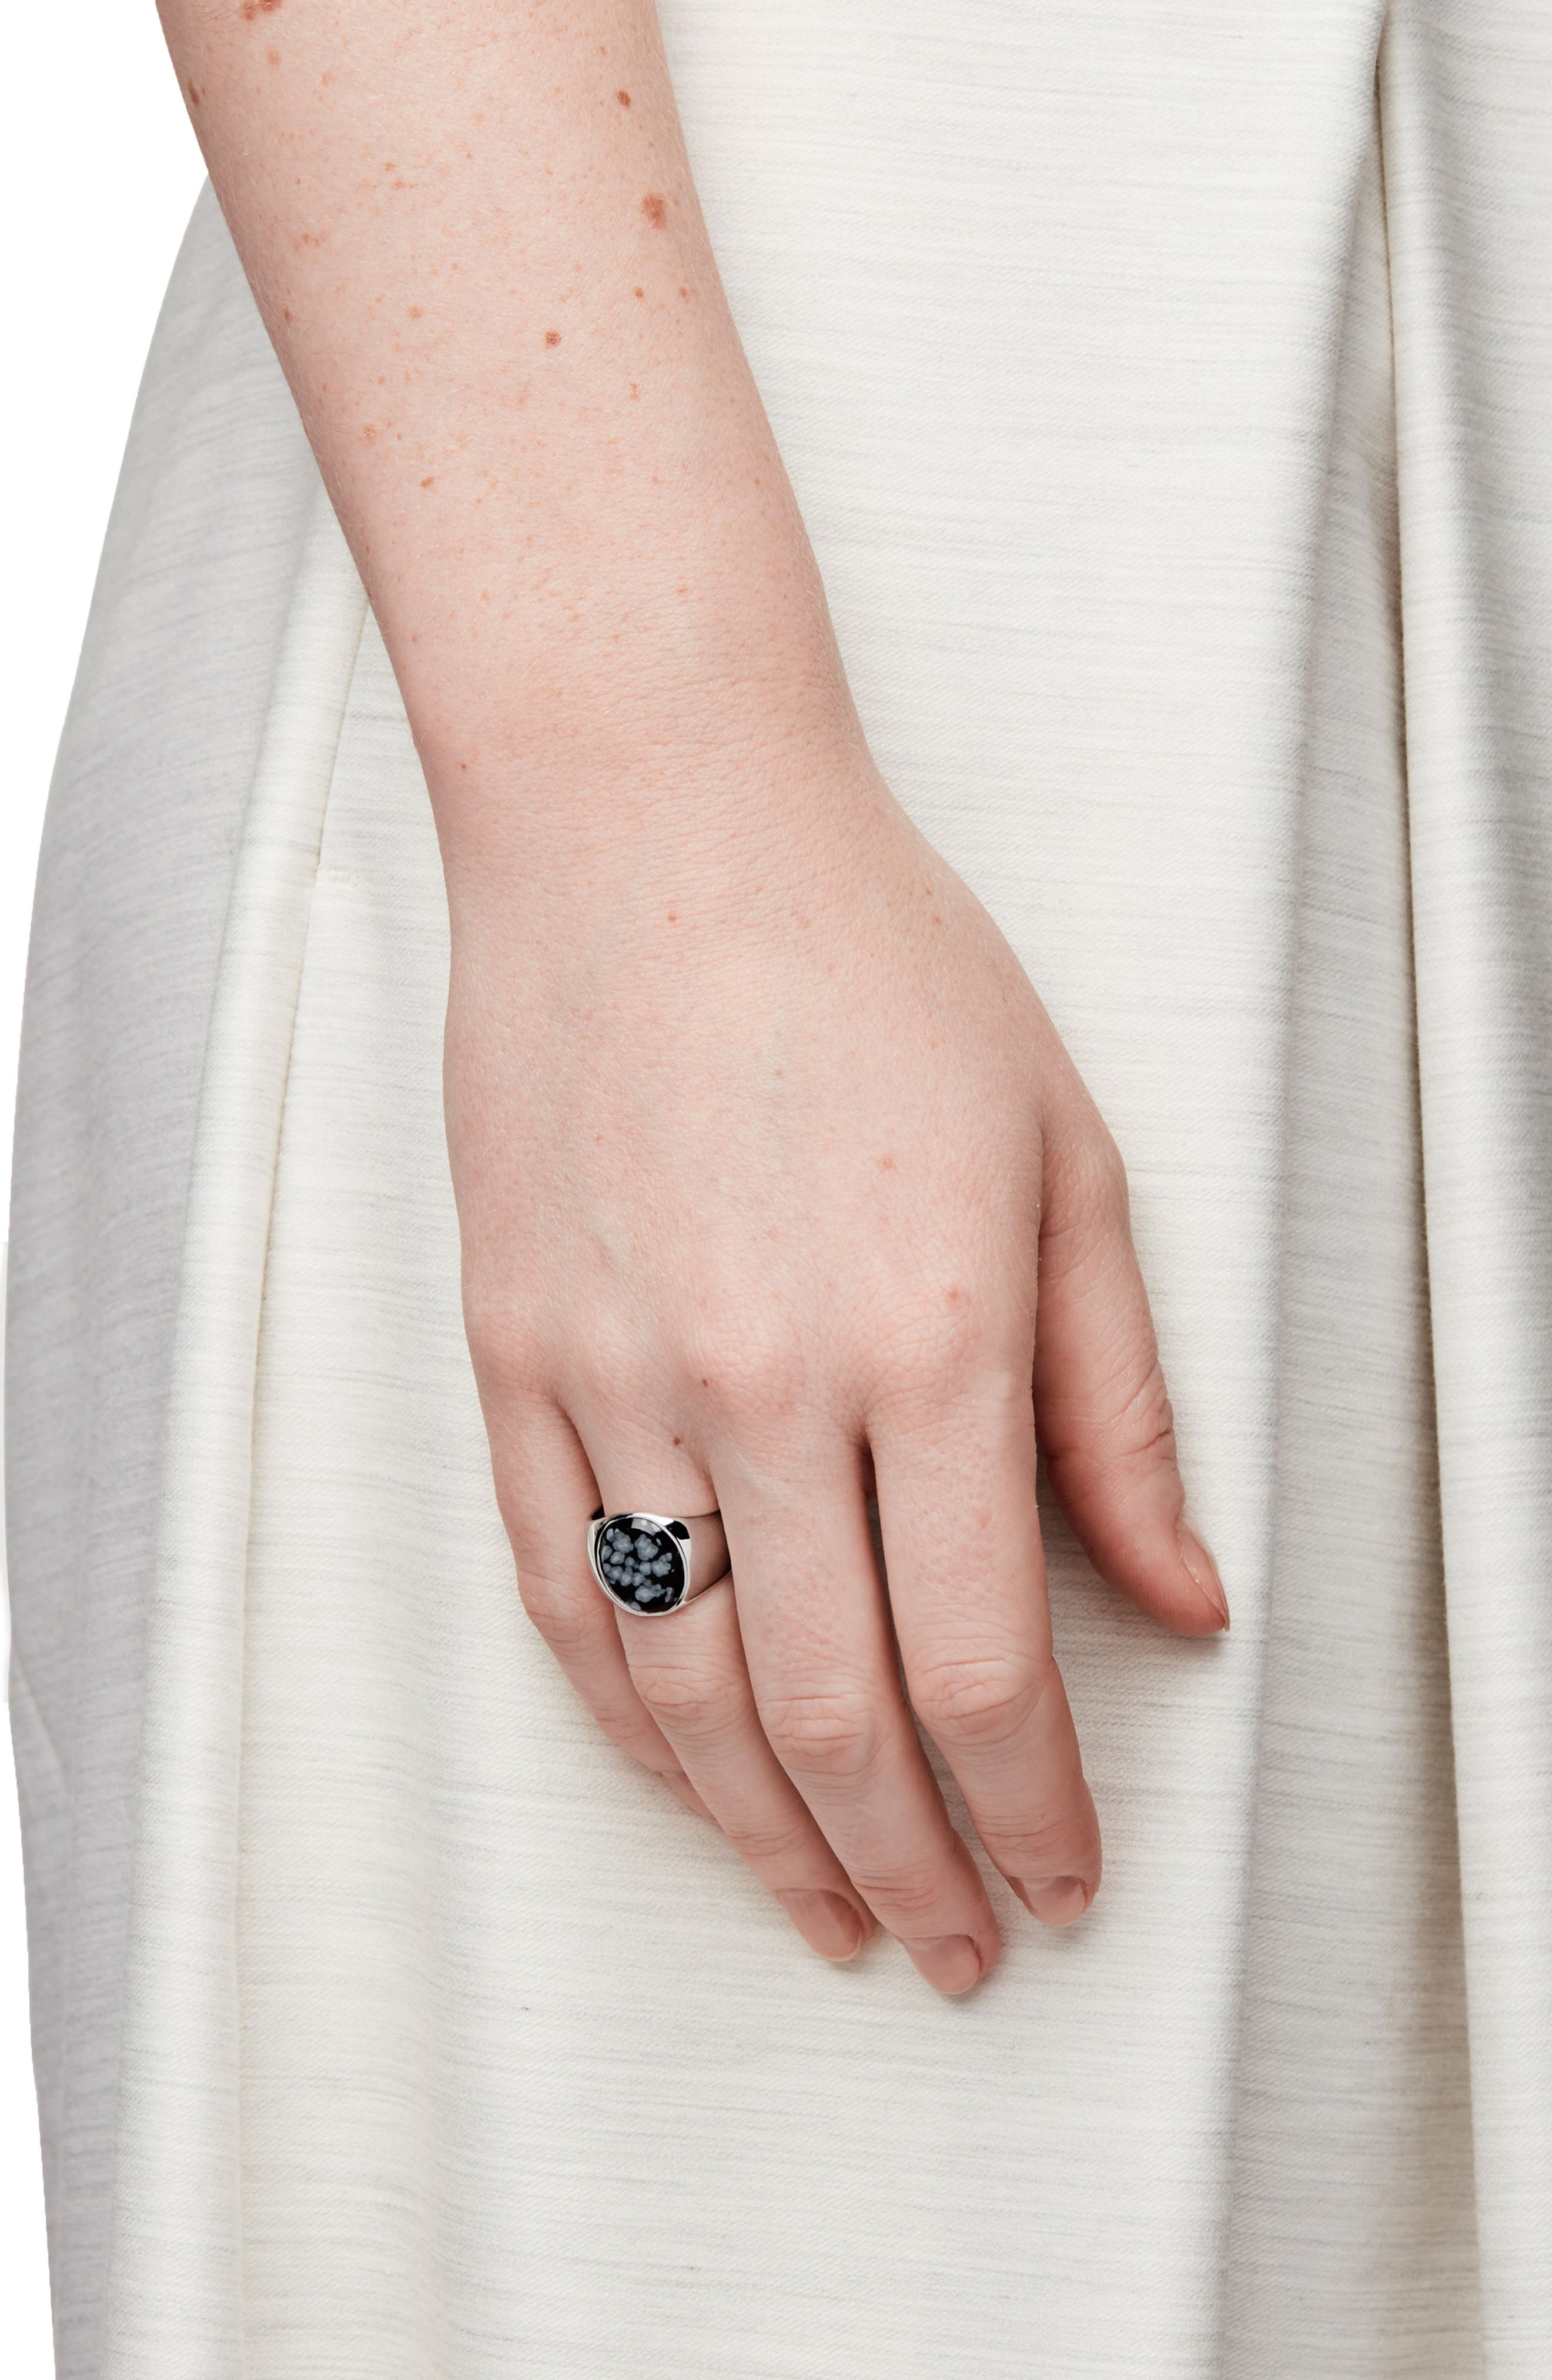 Snowflake Obsidian Oval Signet Ring,                             Alternate thumbnail 3, color,